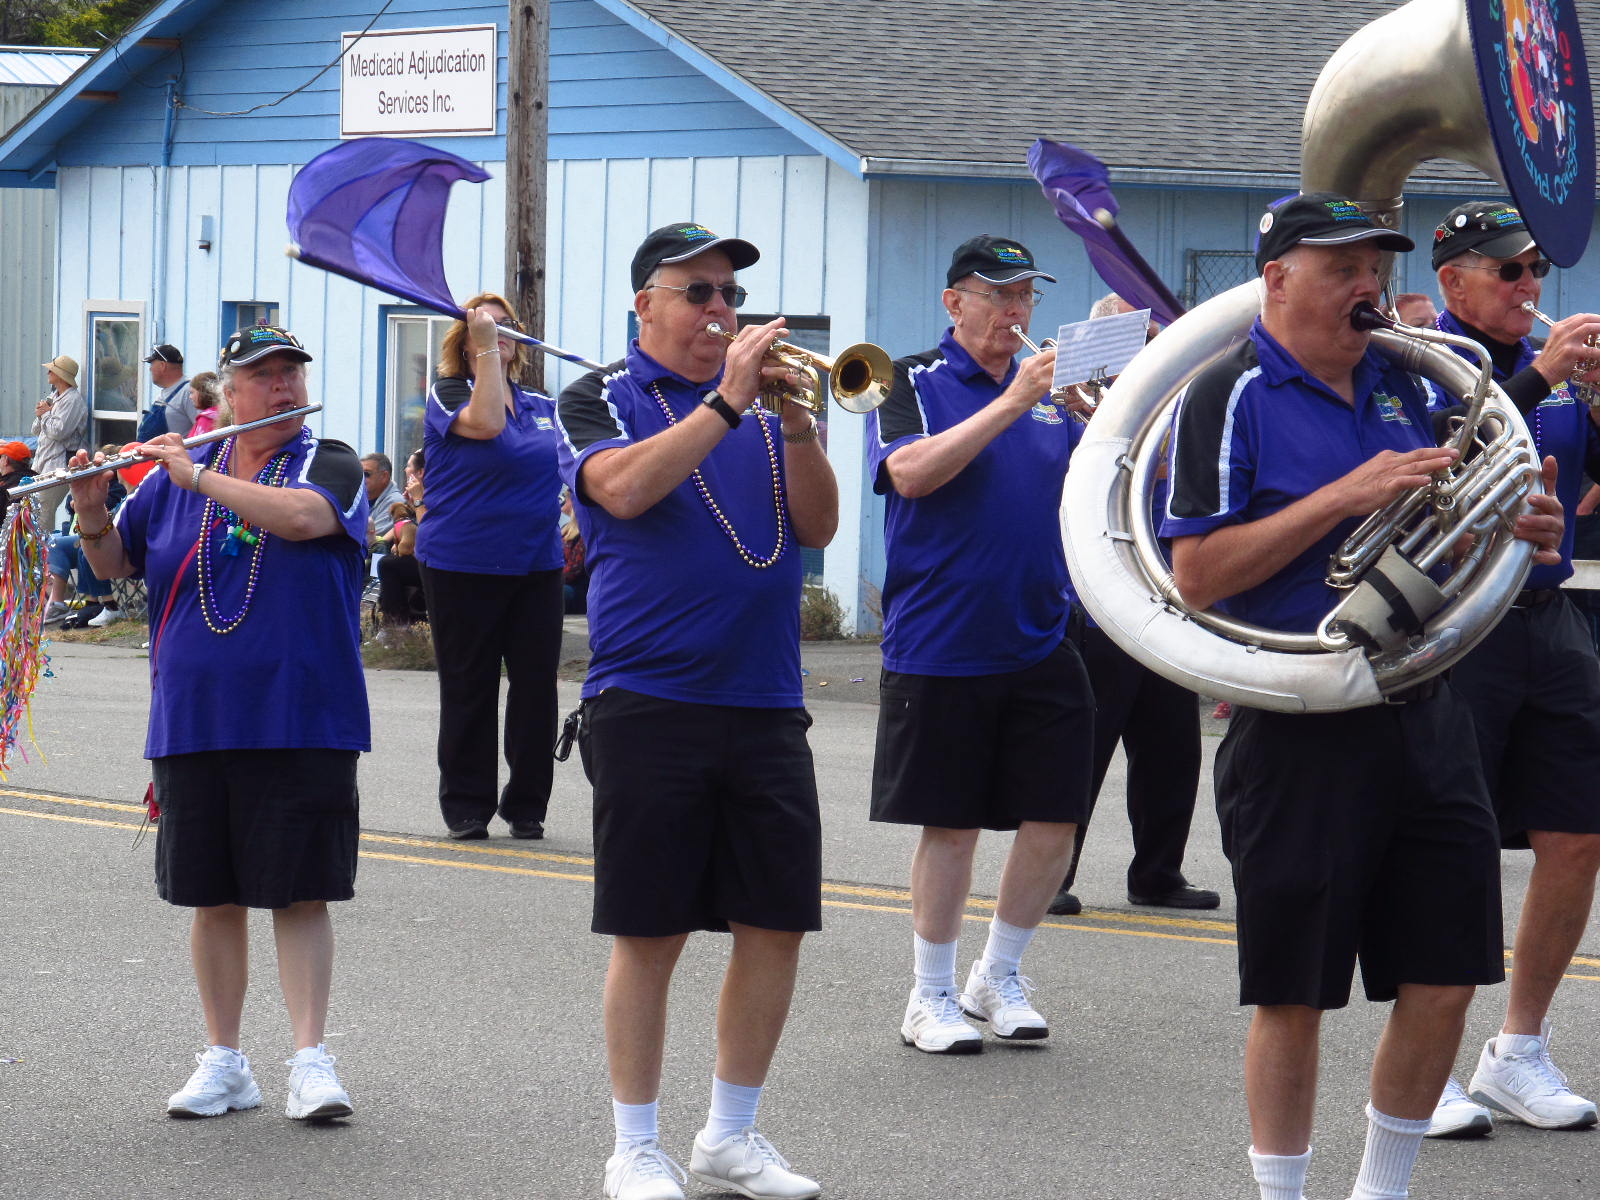 The Beat Goes On Marching Band in Coos Bay, OR Fun Fest. Parade Sept 2017